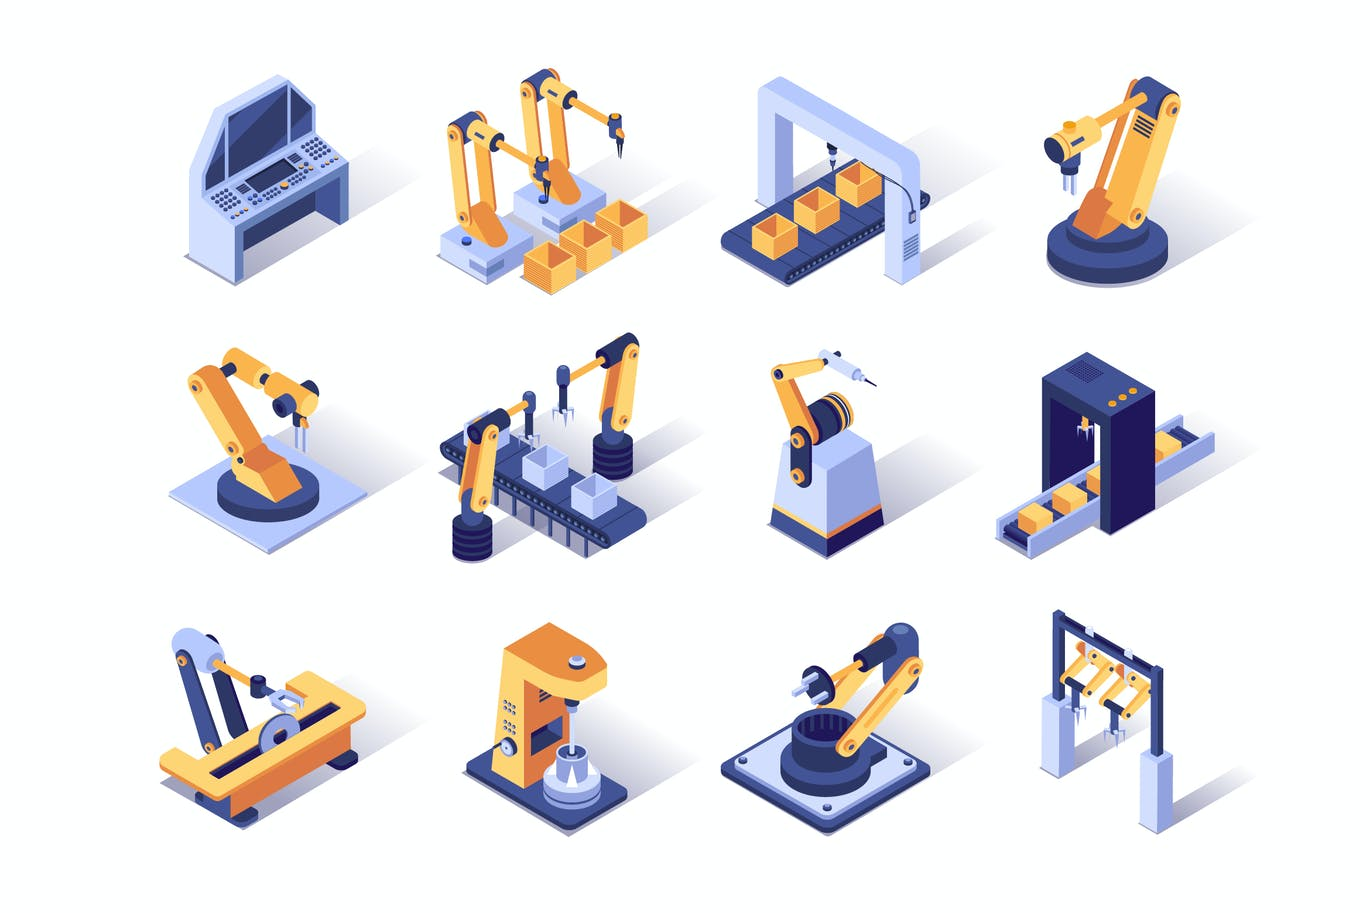 Robotization Industry Isometric Icons Set